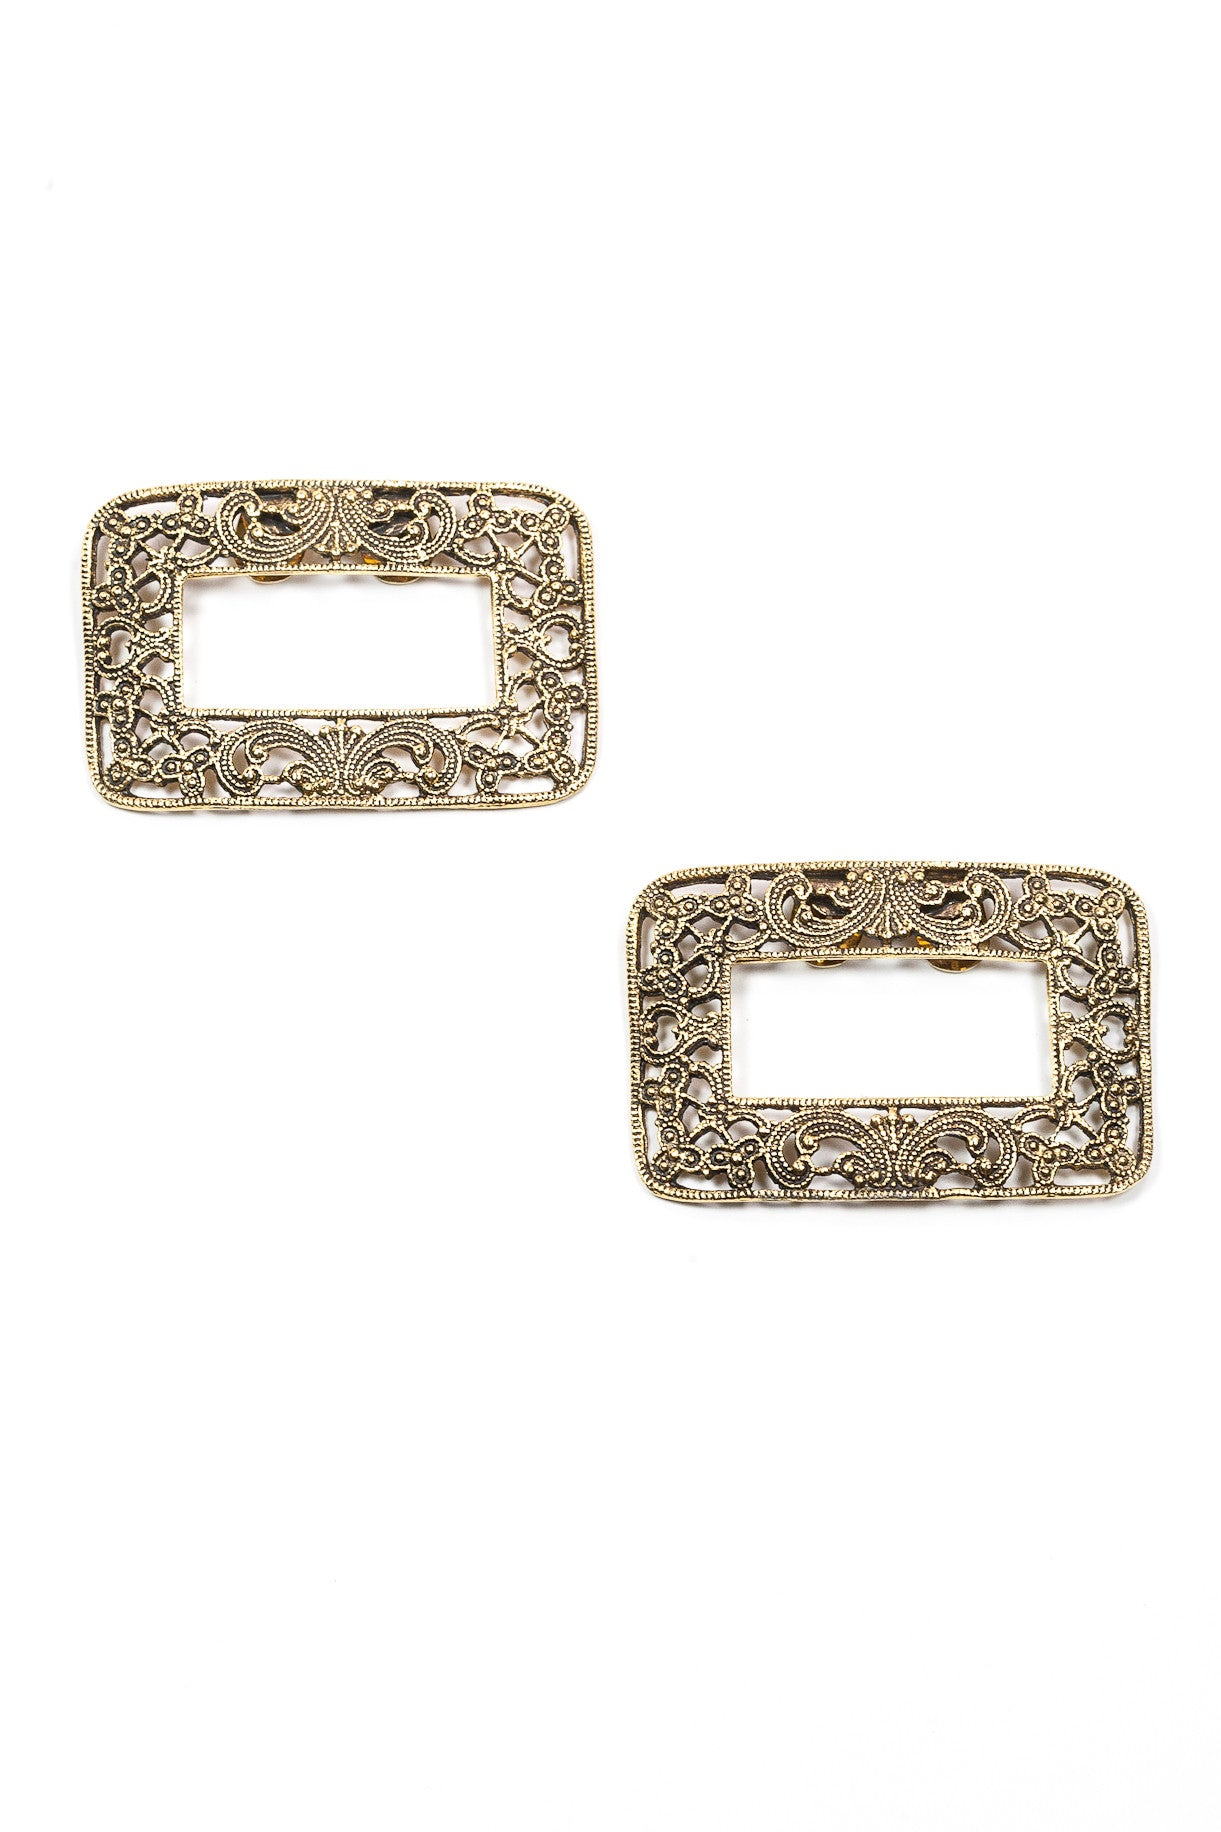 50's__Vintage__Rectangle Rhinestone Shoe Clips